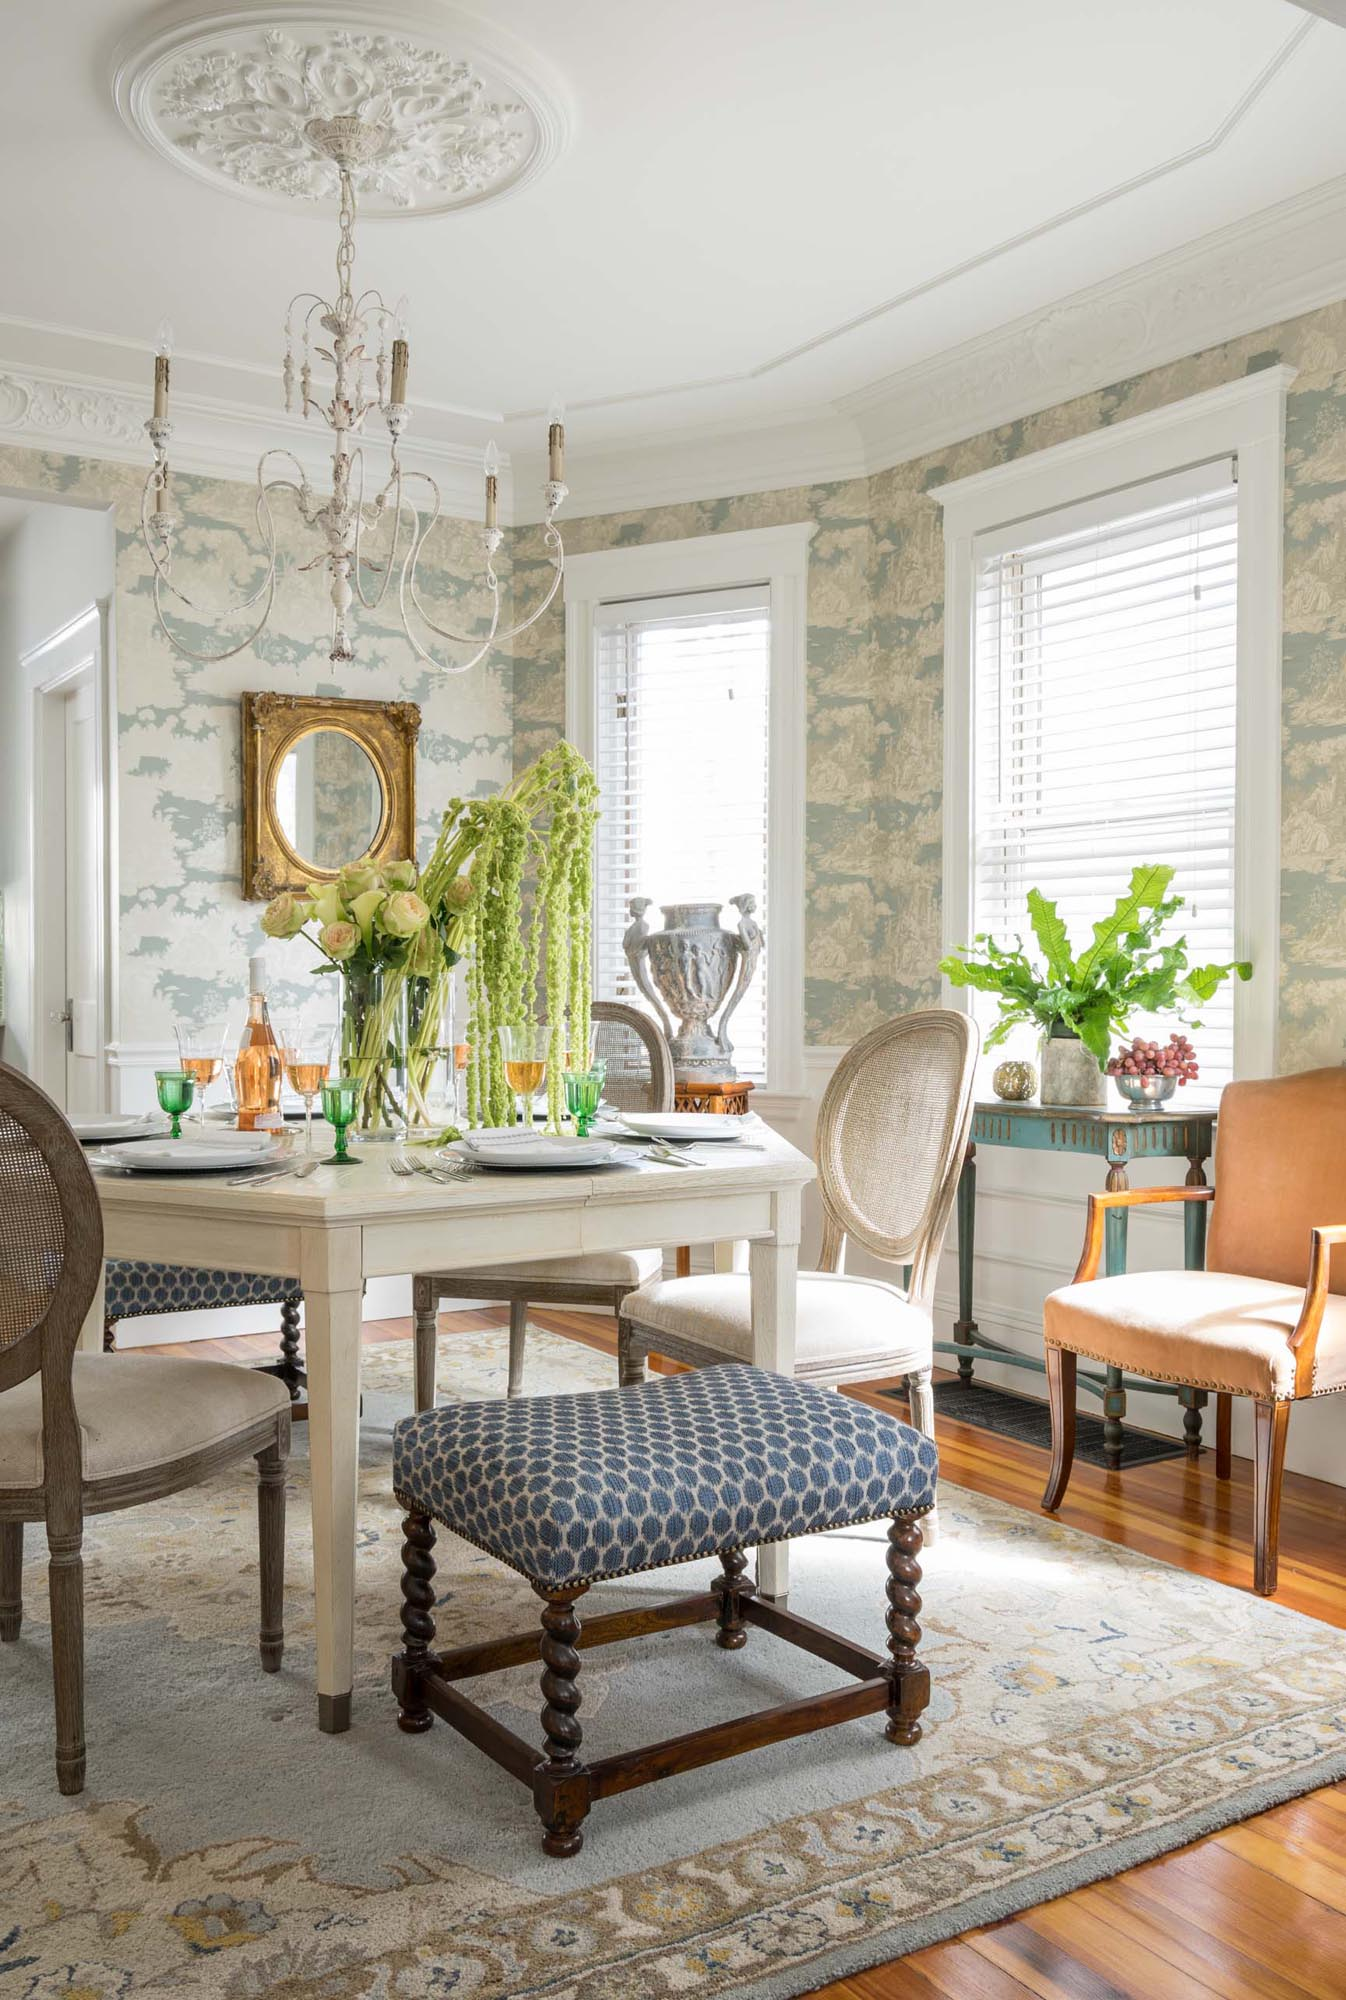 Dining Room Design with table set up and indoor plants decorations